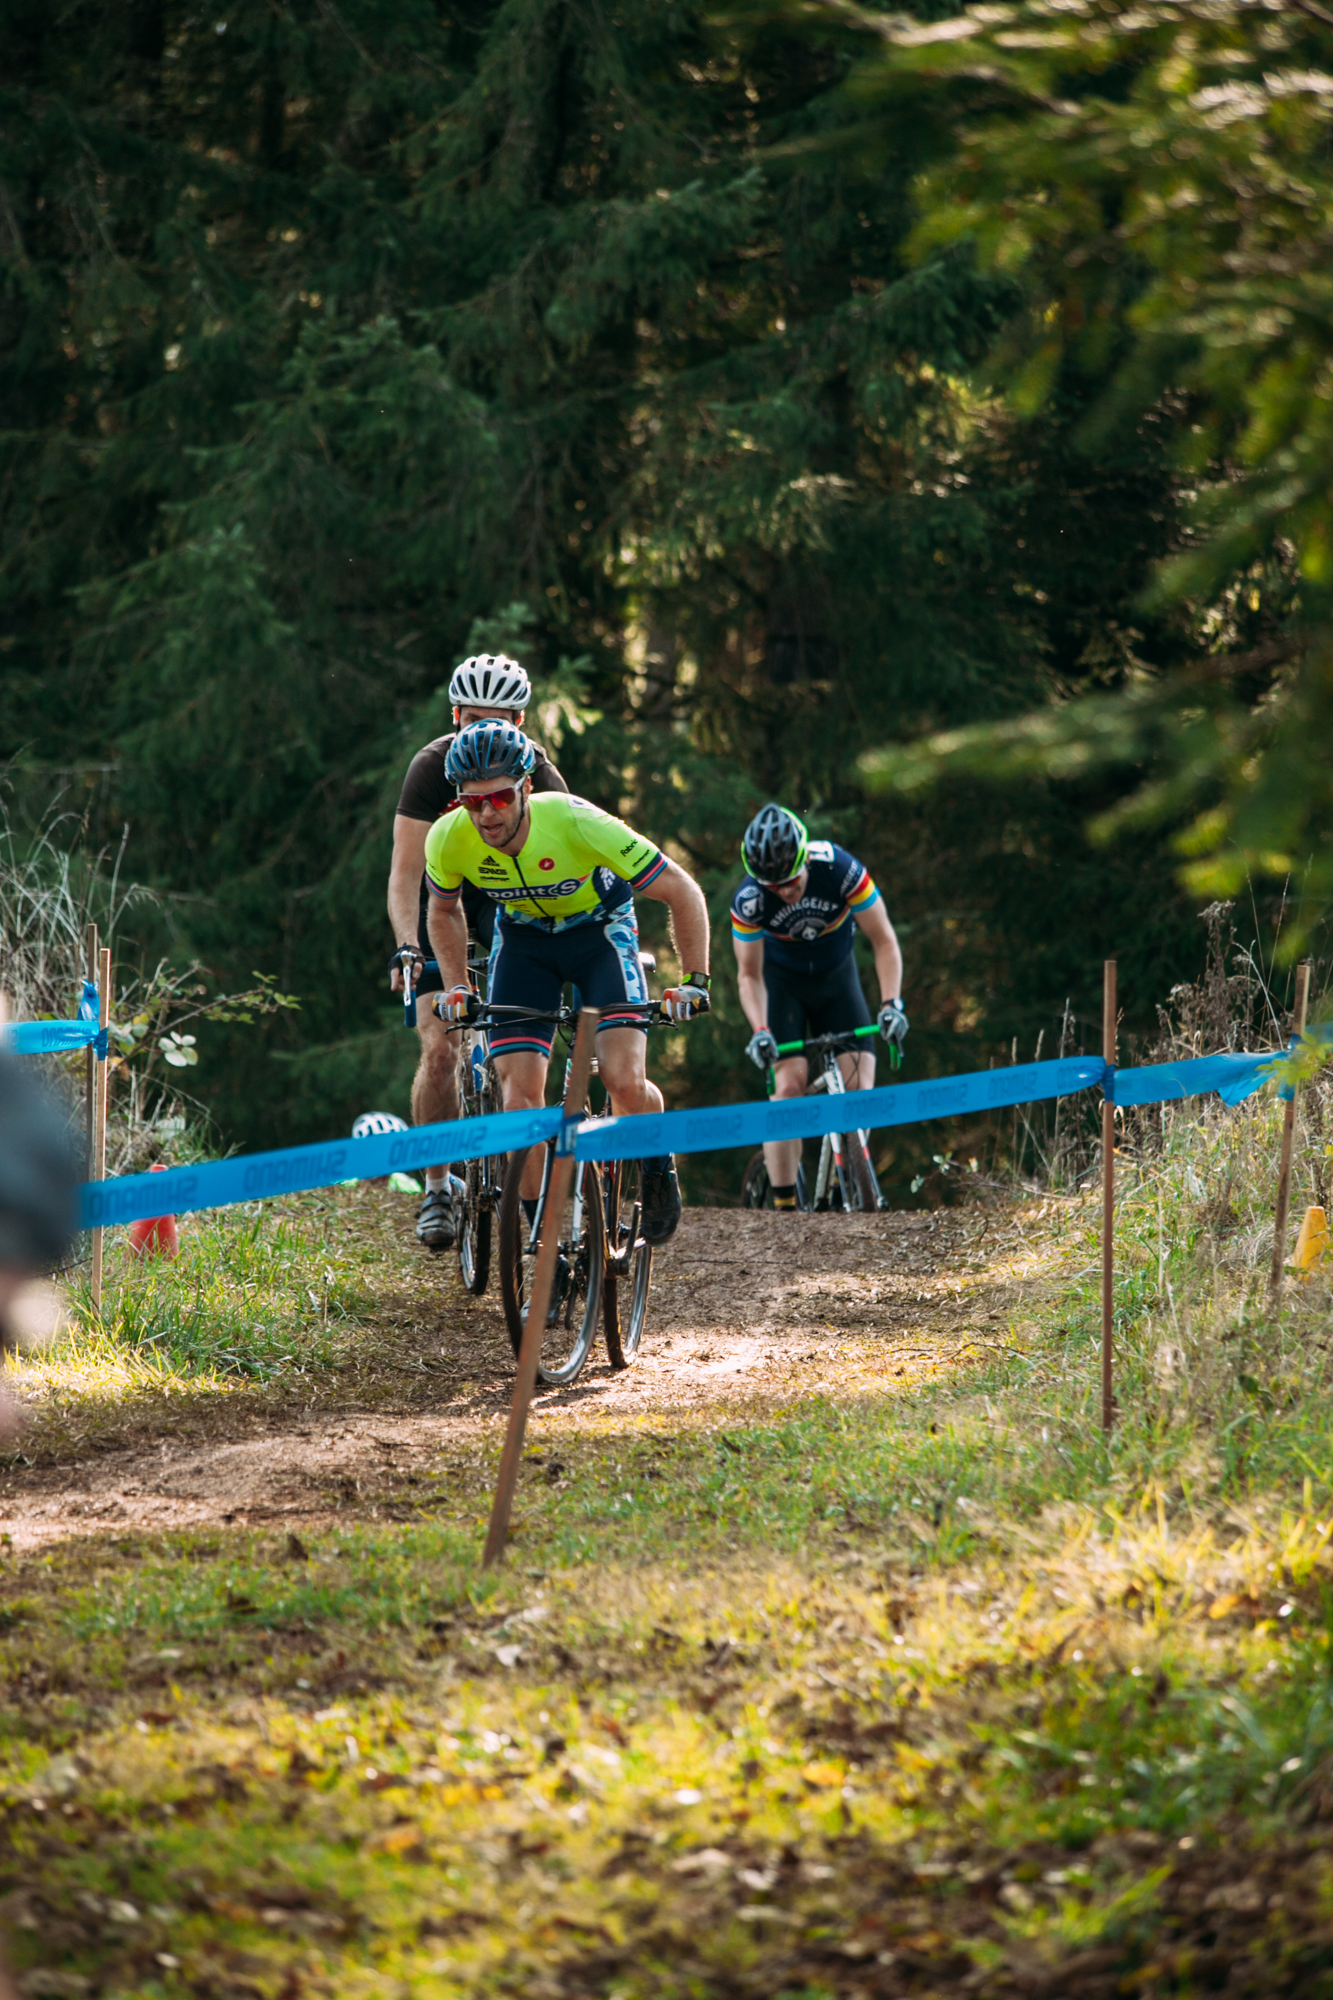 Cyclocross18_CCCX_RainierHS-142-mettlecycling.jpg